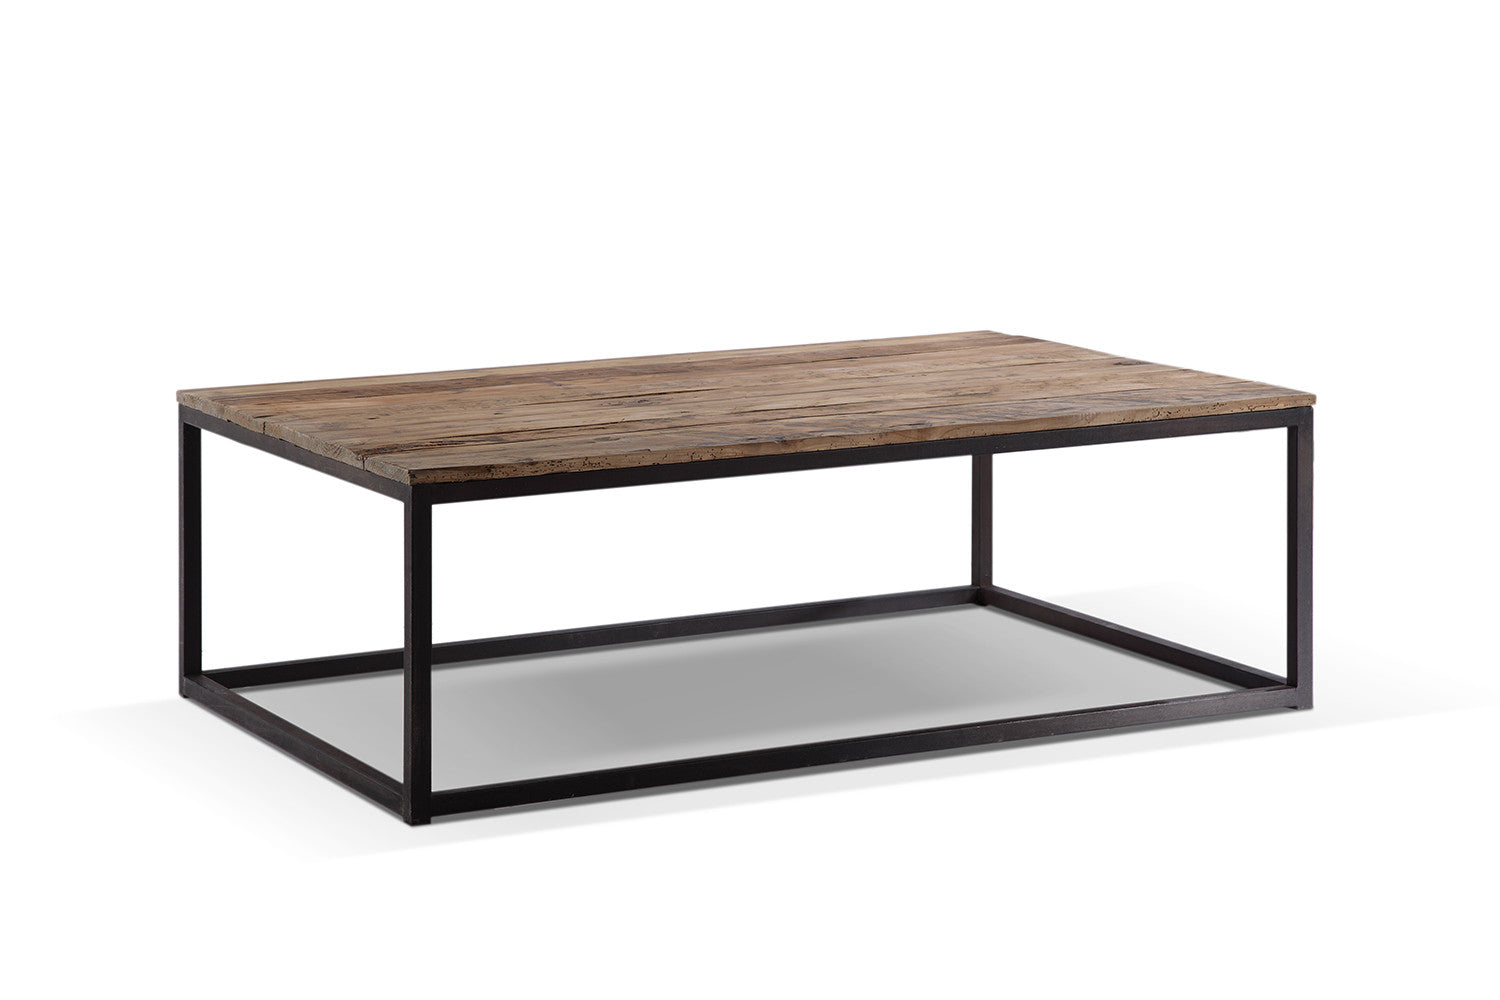 Table basse industrielle en m tal et bois rose moore - Table basse faite maison ...